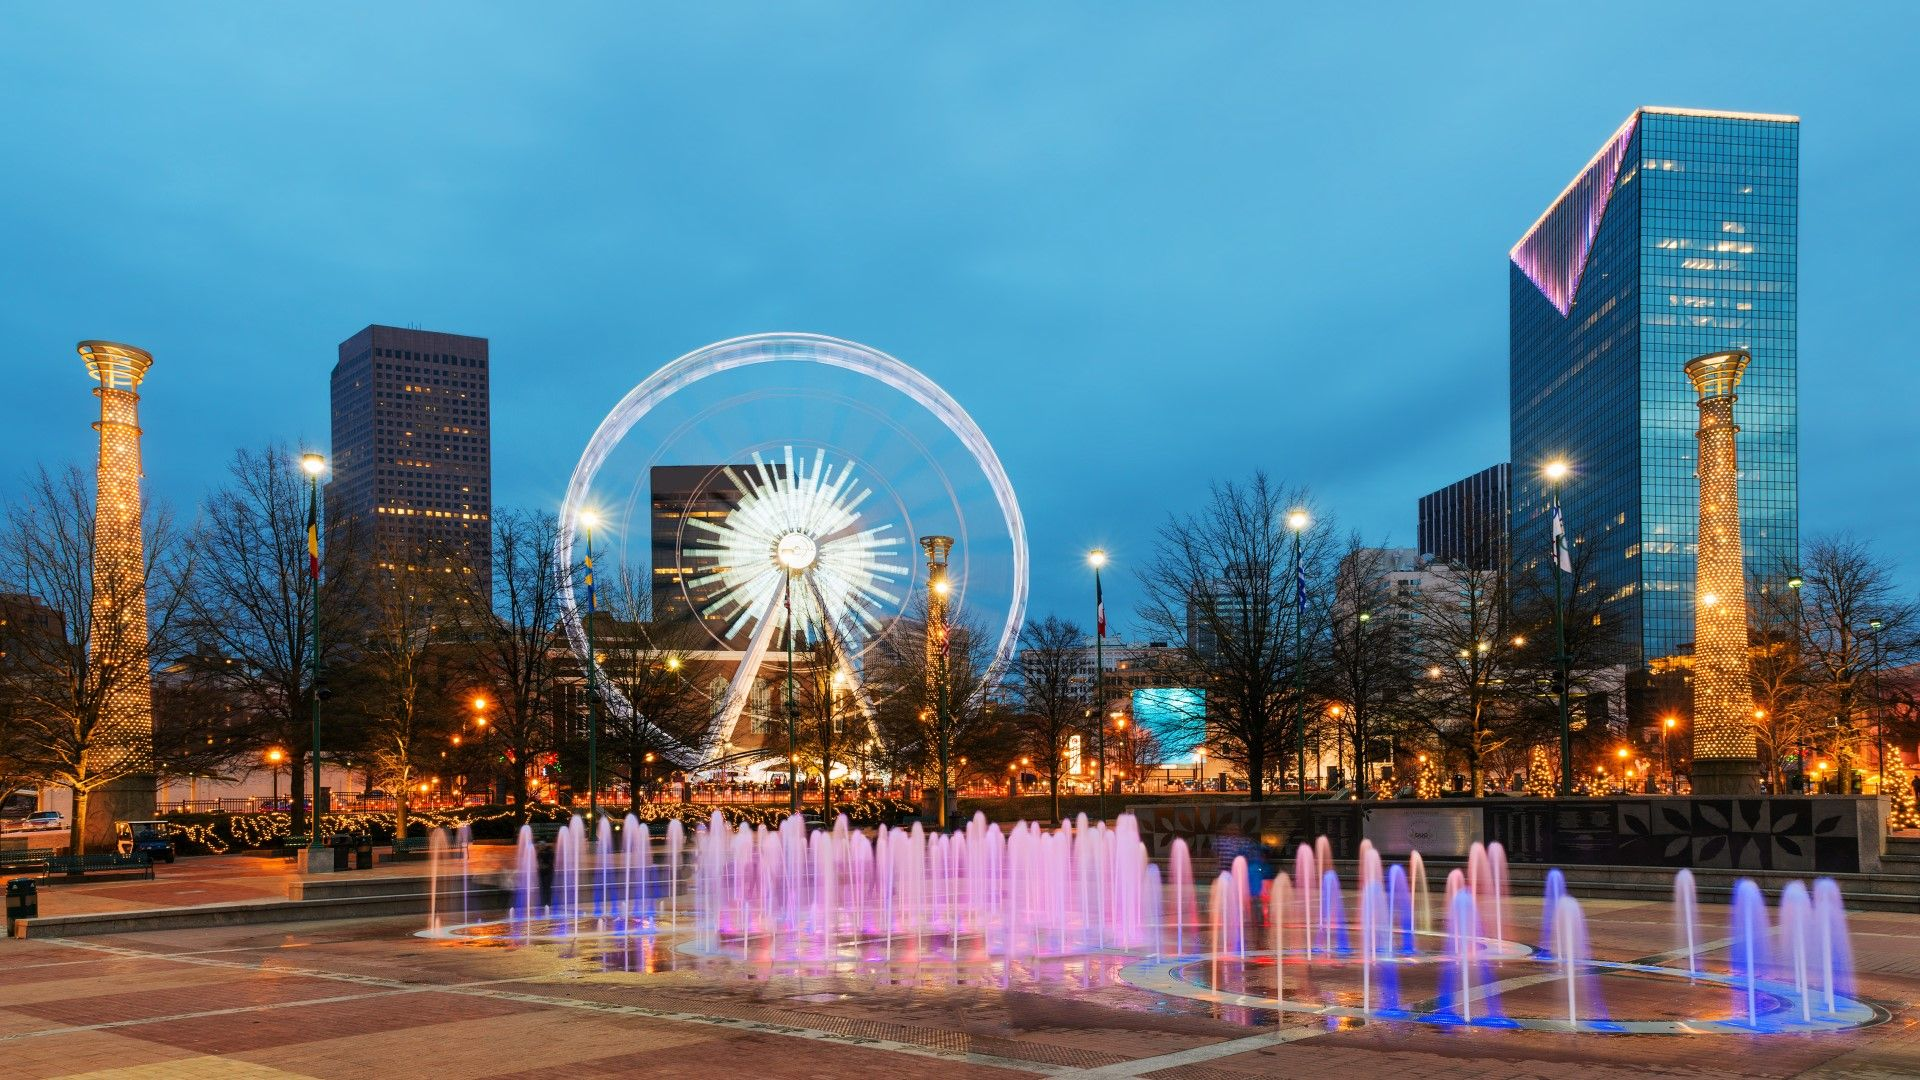 Explore the Centennial Olympic Park when you travel to